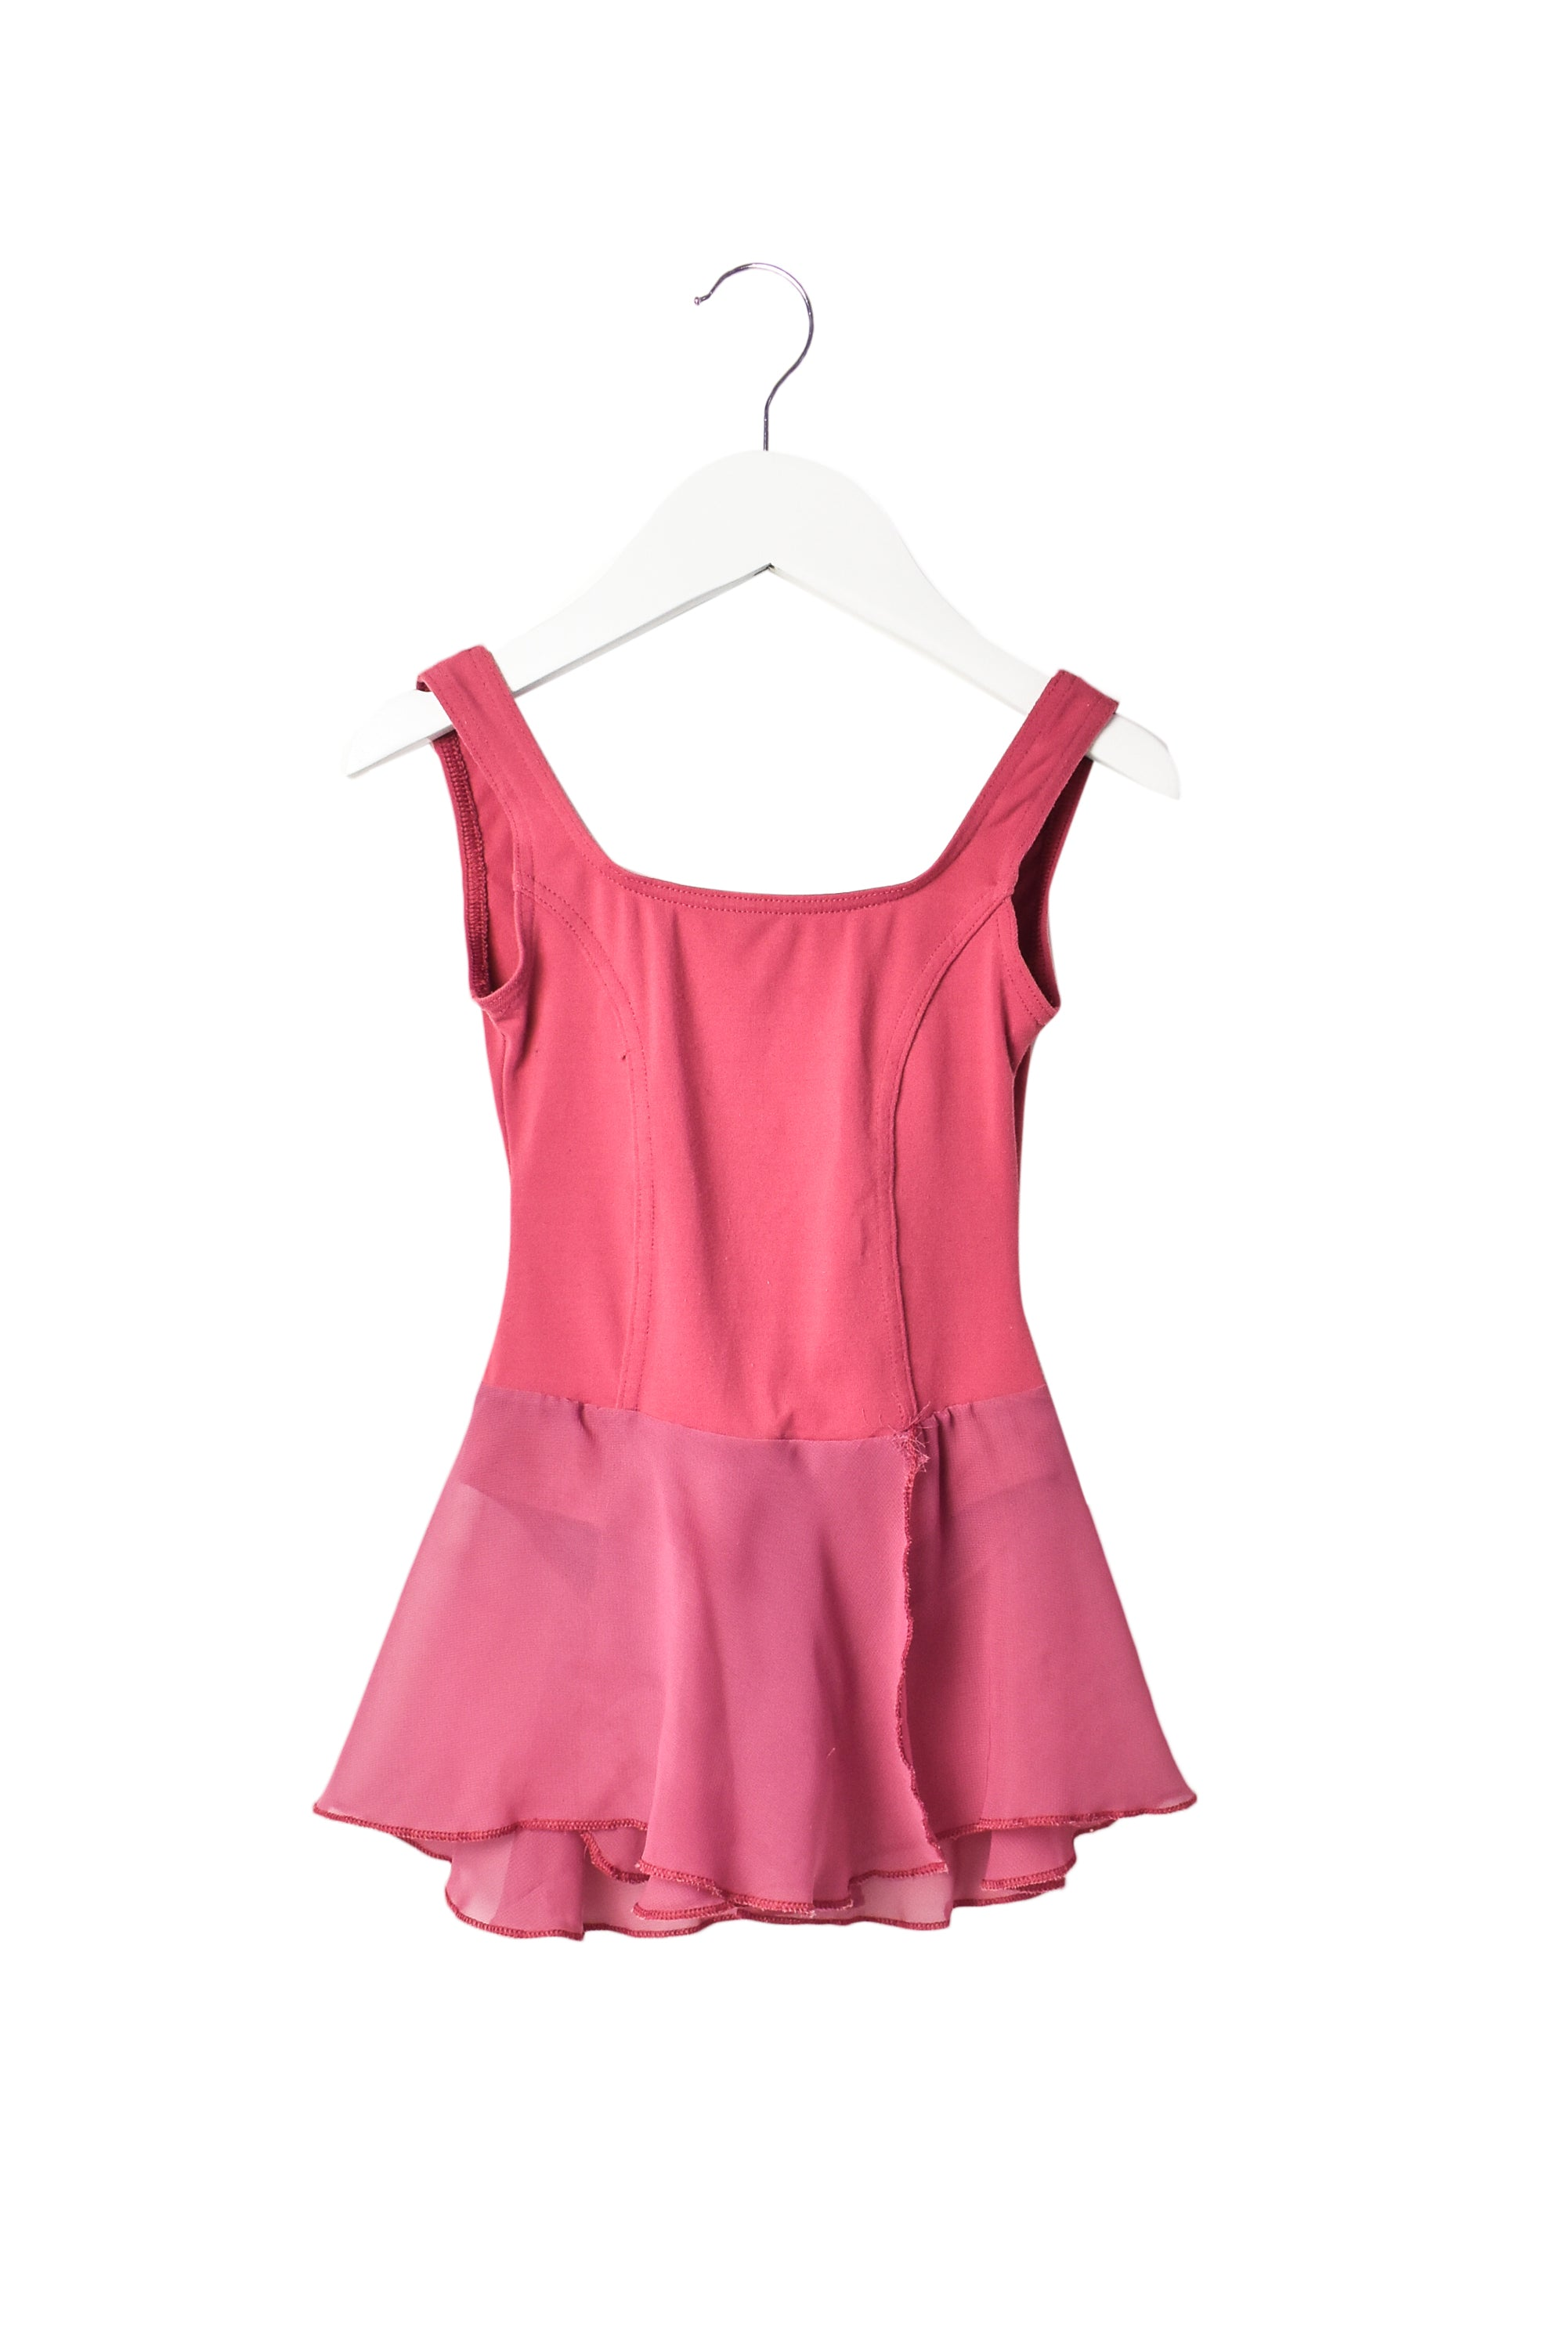 10007245 Repetto Kids~ Leotard 4T at Retykle